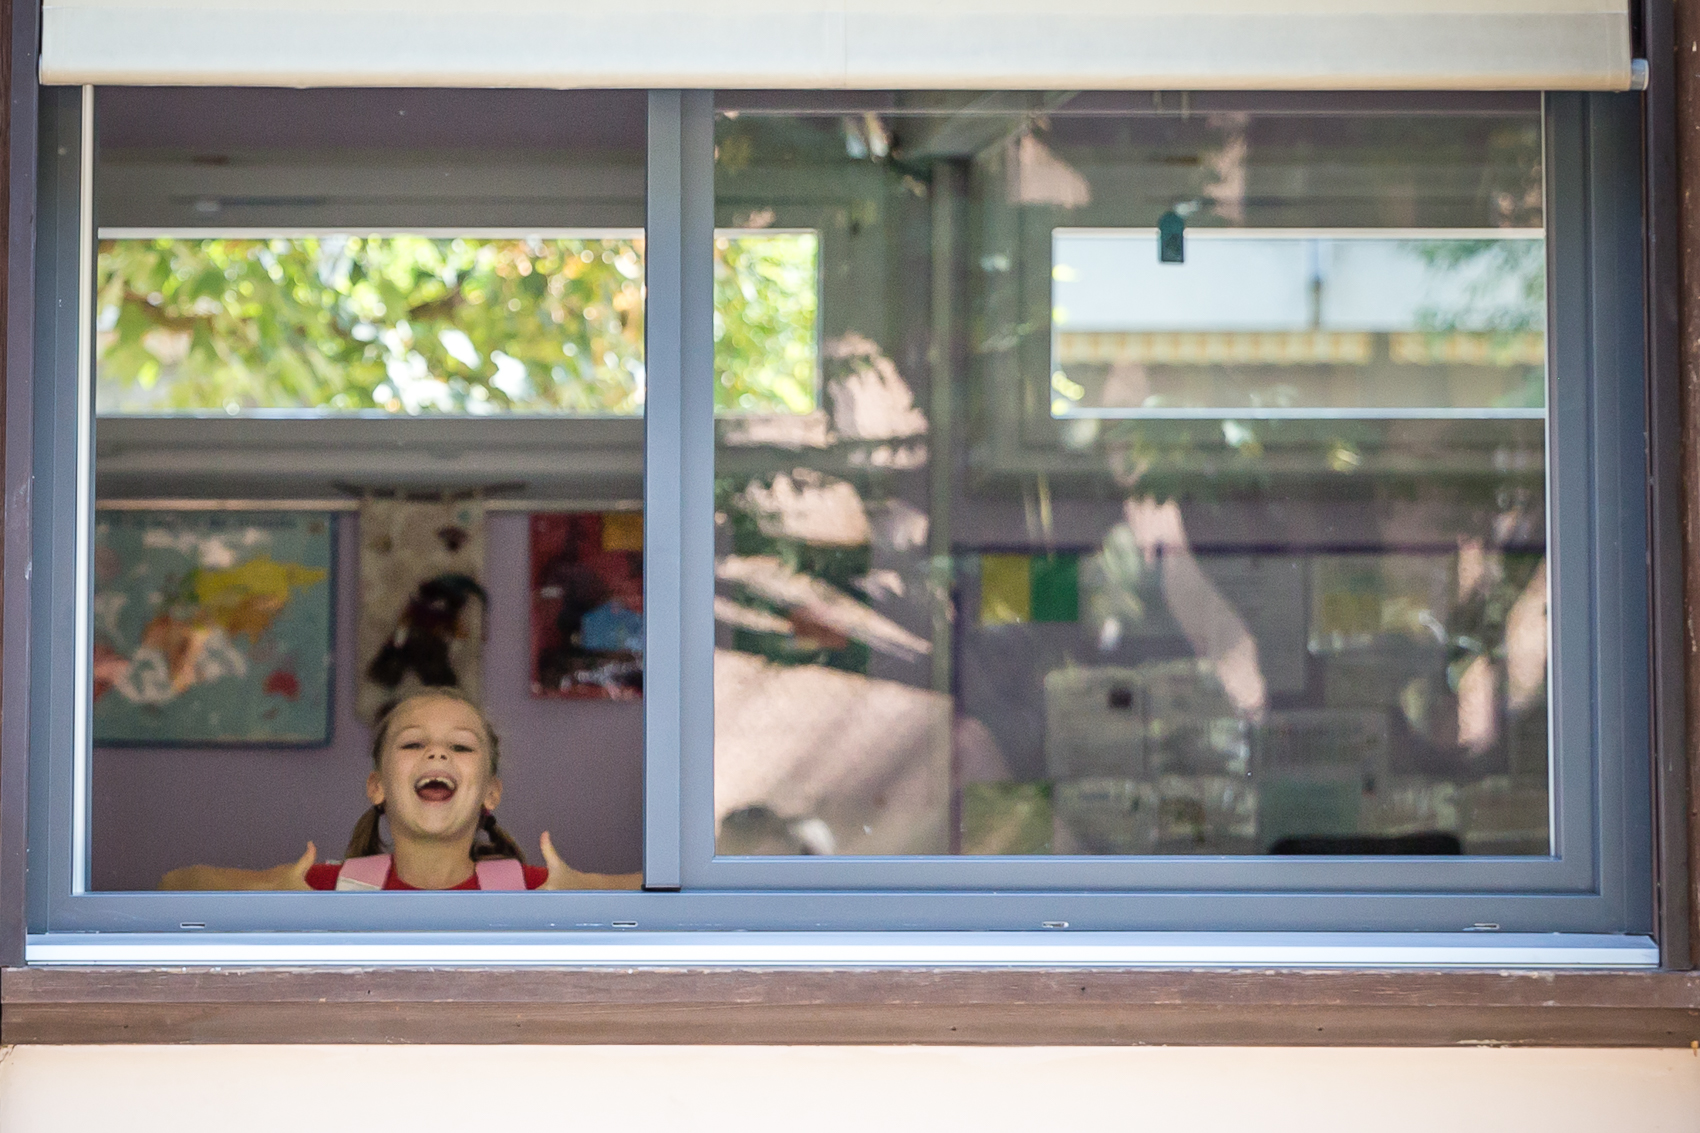 The windows open wide to the outdoors - fresh air always plentiful - it's an old school with brand spankin' new windows!